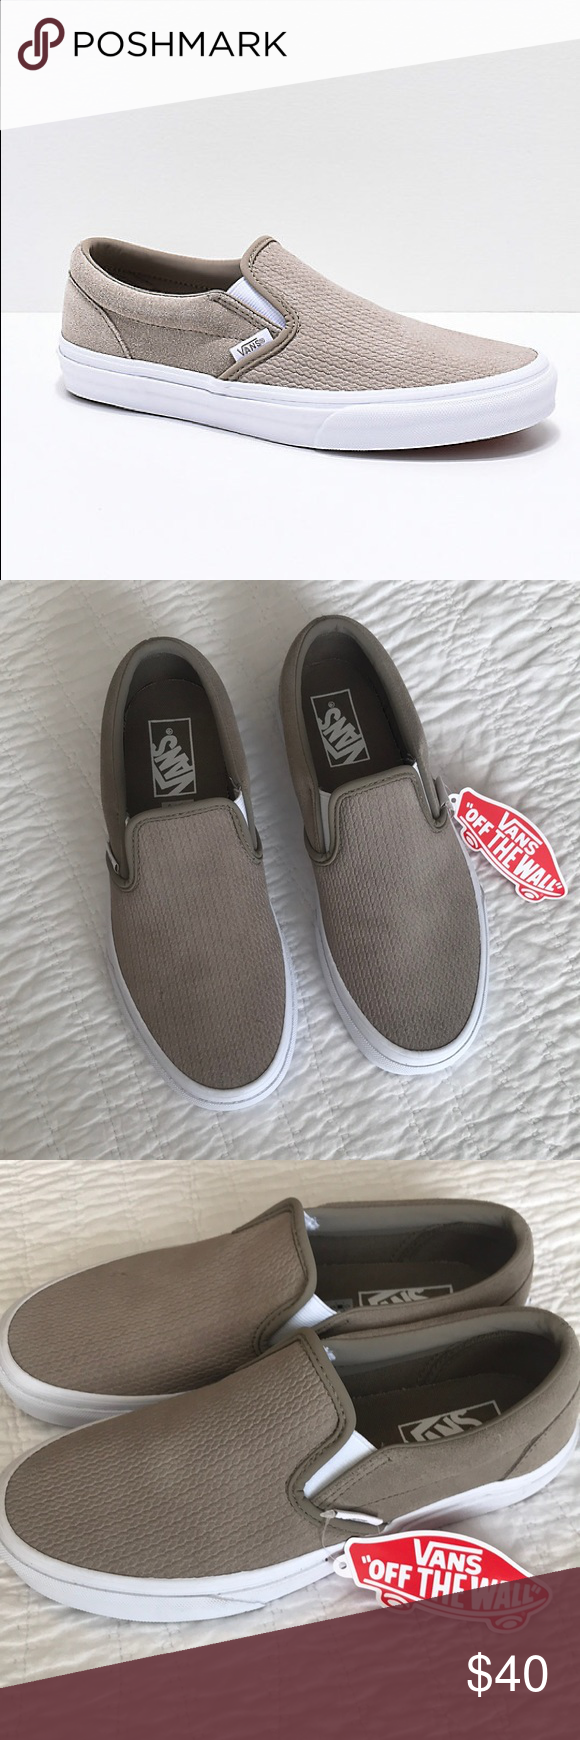 59714d5e998 Vans Classic Slip-On Desert Taupe Suede Emboss 7.5 Vans Classic Slip-On.  Suede Desert Taupe Embossed. Women s 7.5. New in box never worn but the box  lid is ...